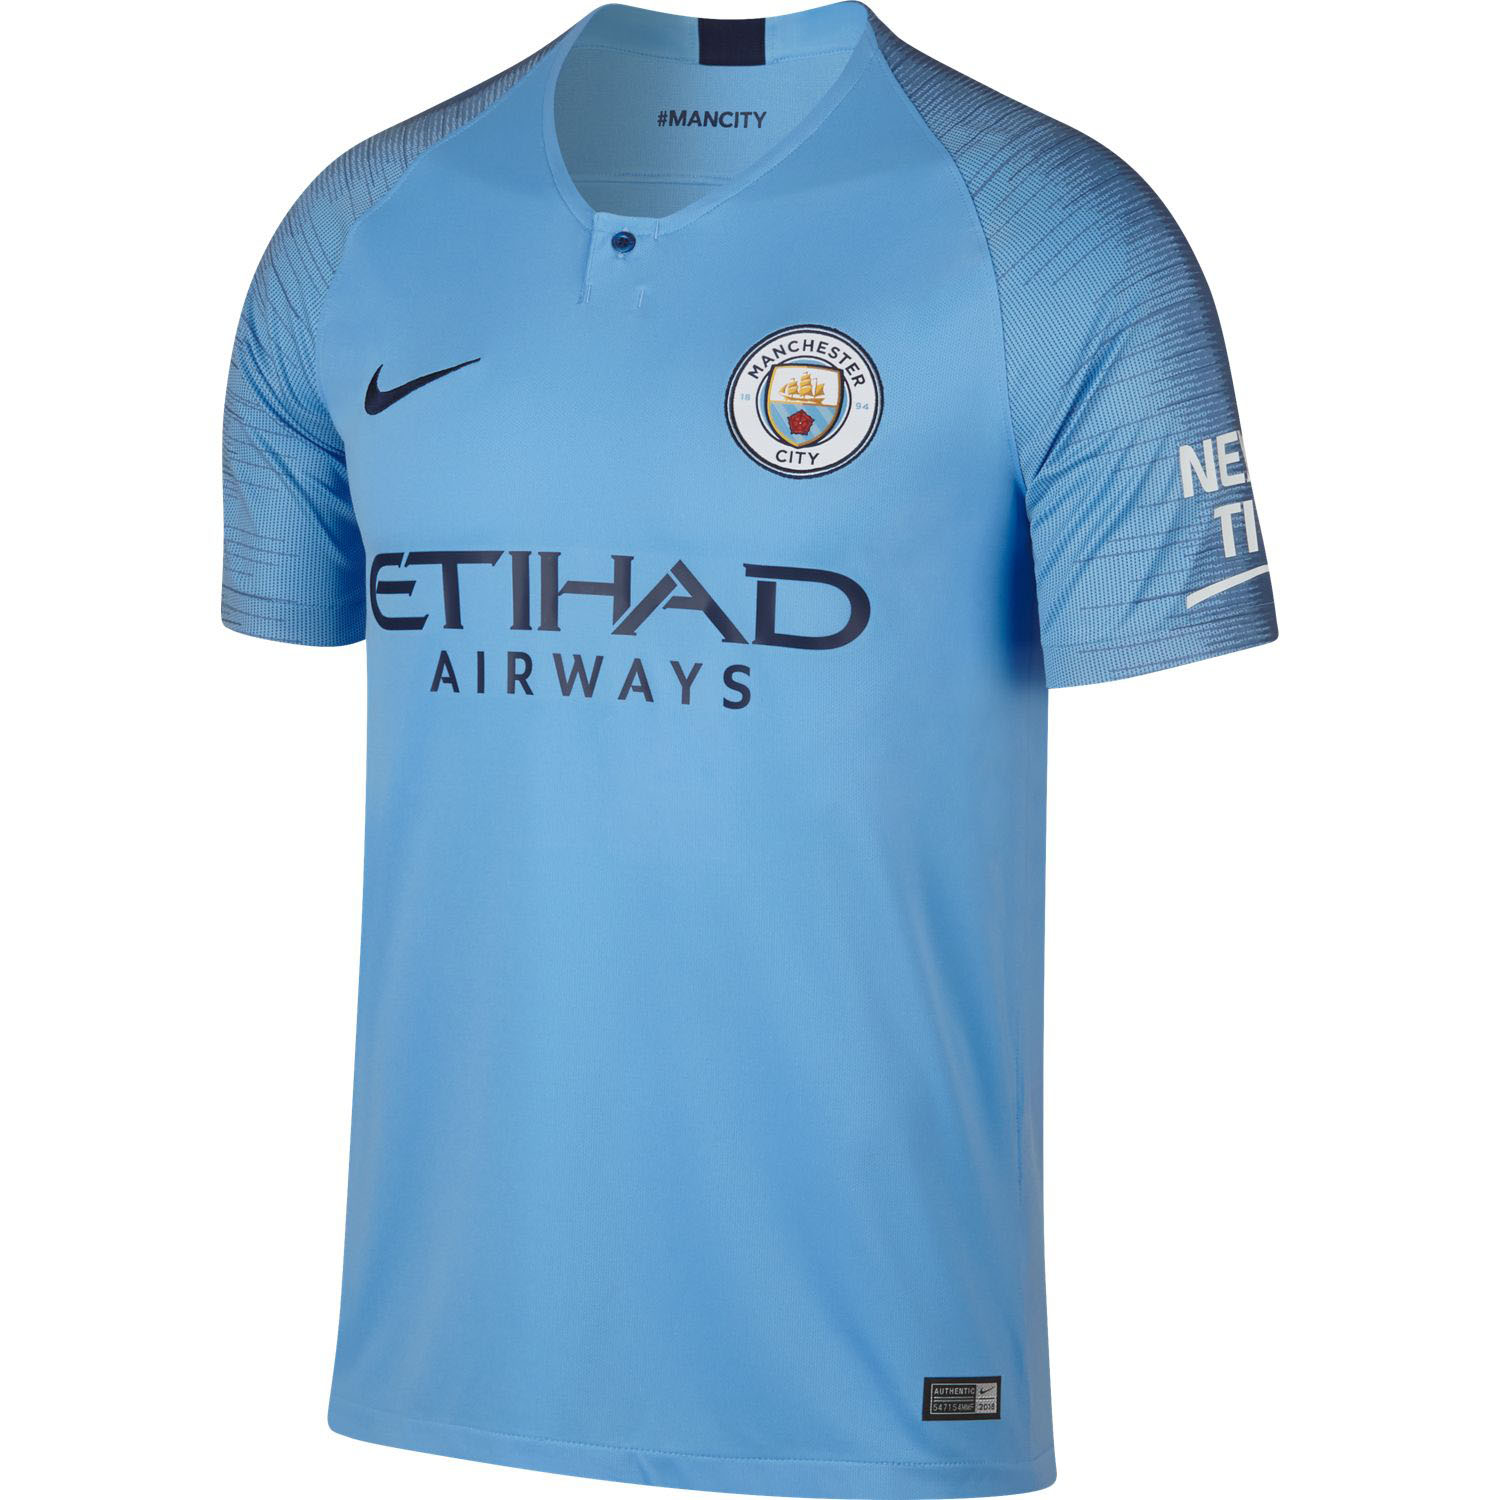 ao bong da man city san nha 2018 2019